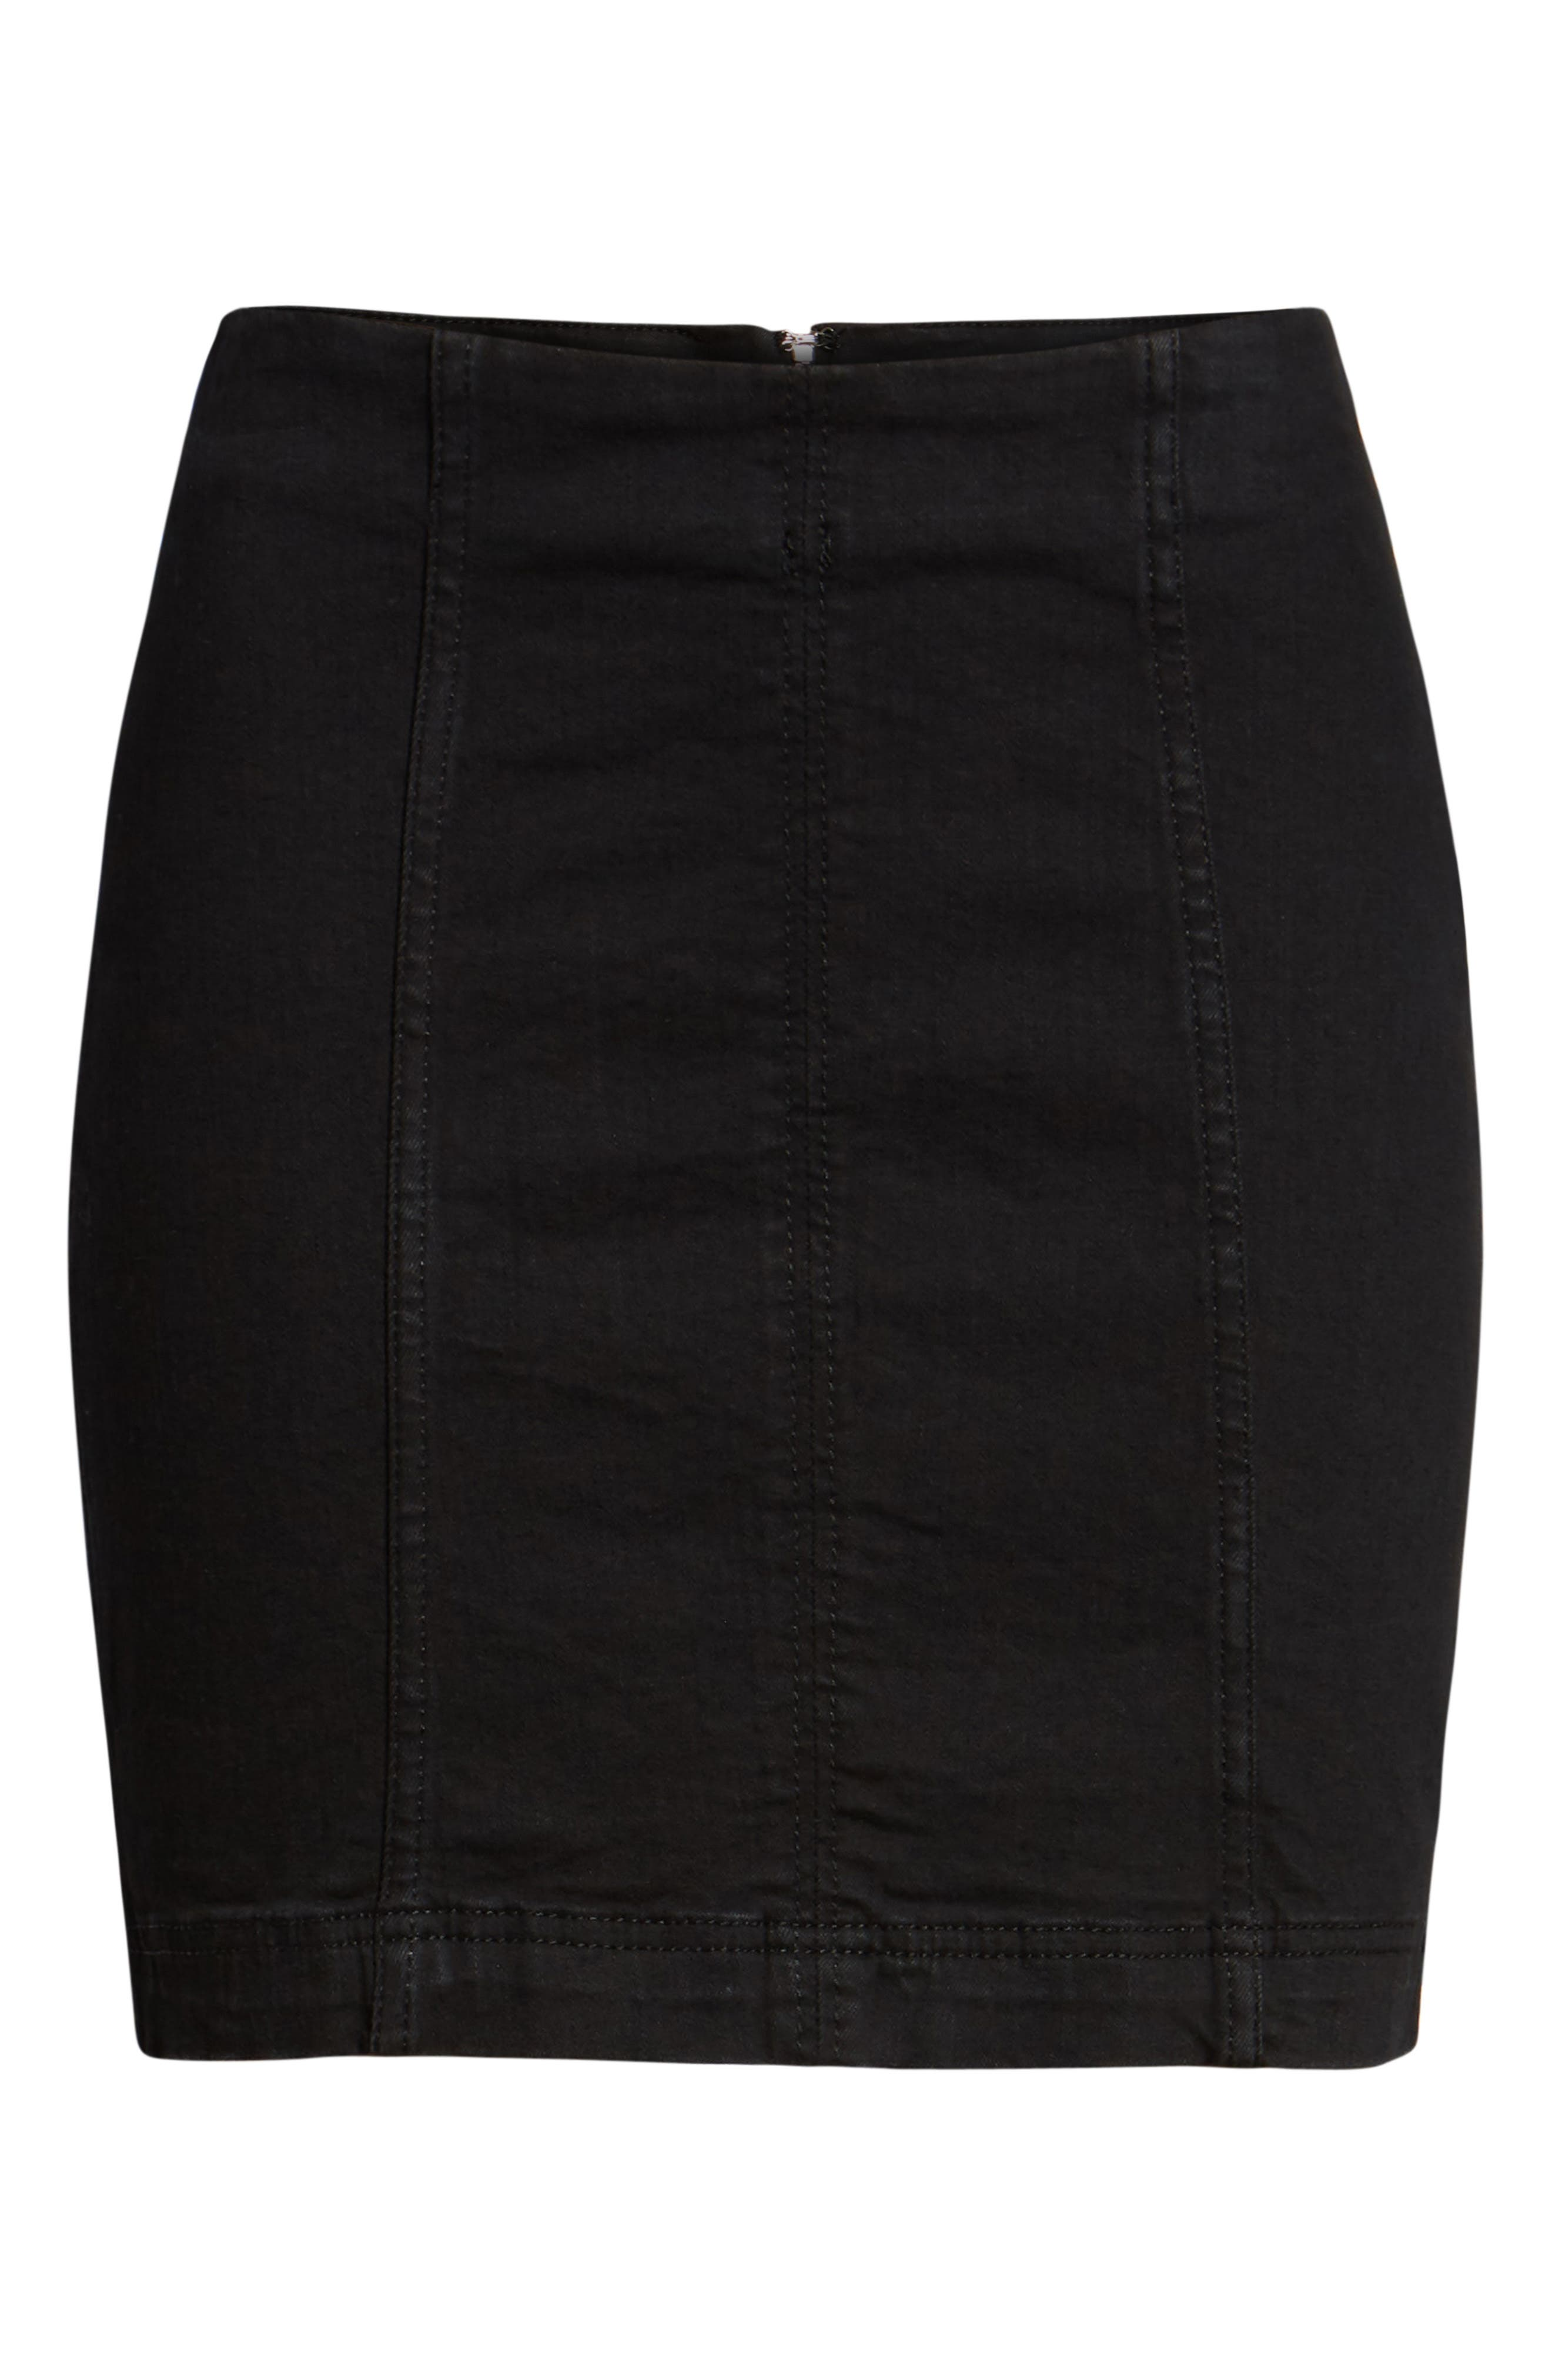 FREE PEOPLE, We the Free by Free People Modern Denim Miniskirt, Main thumbnail 1, color, 001